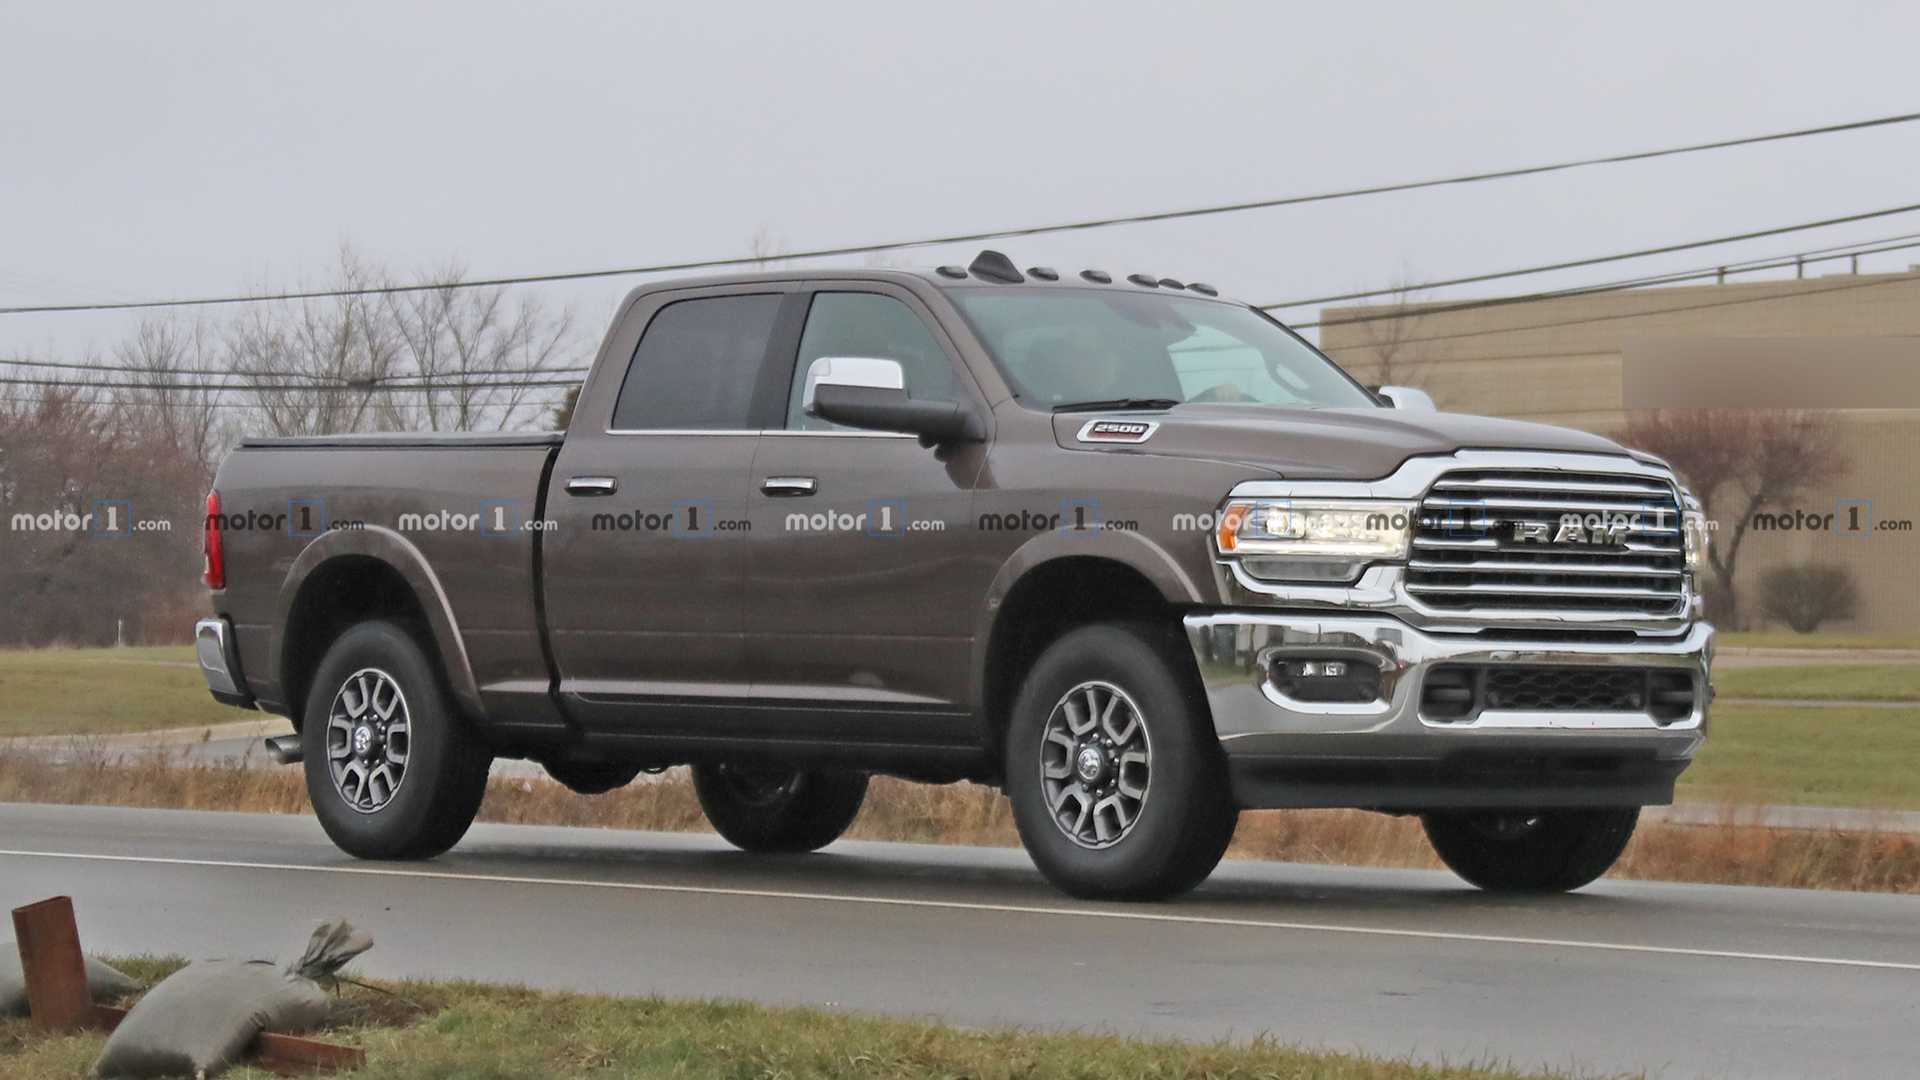 55 Great 2020 Dodge Ram Limited Concept with 2020 Dodge Ram Limited